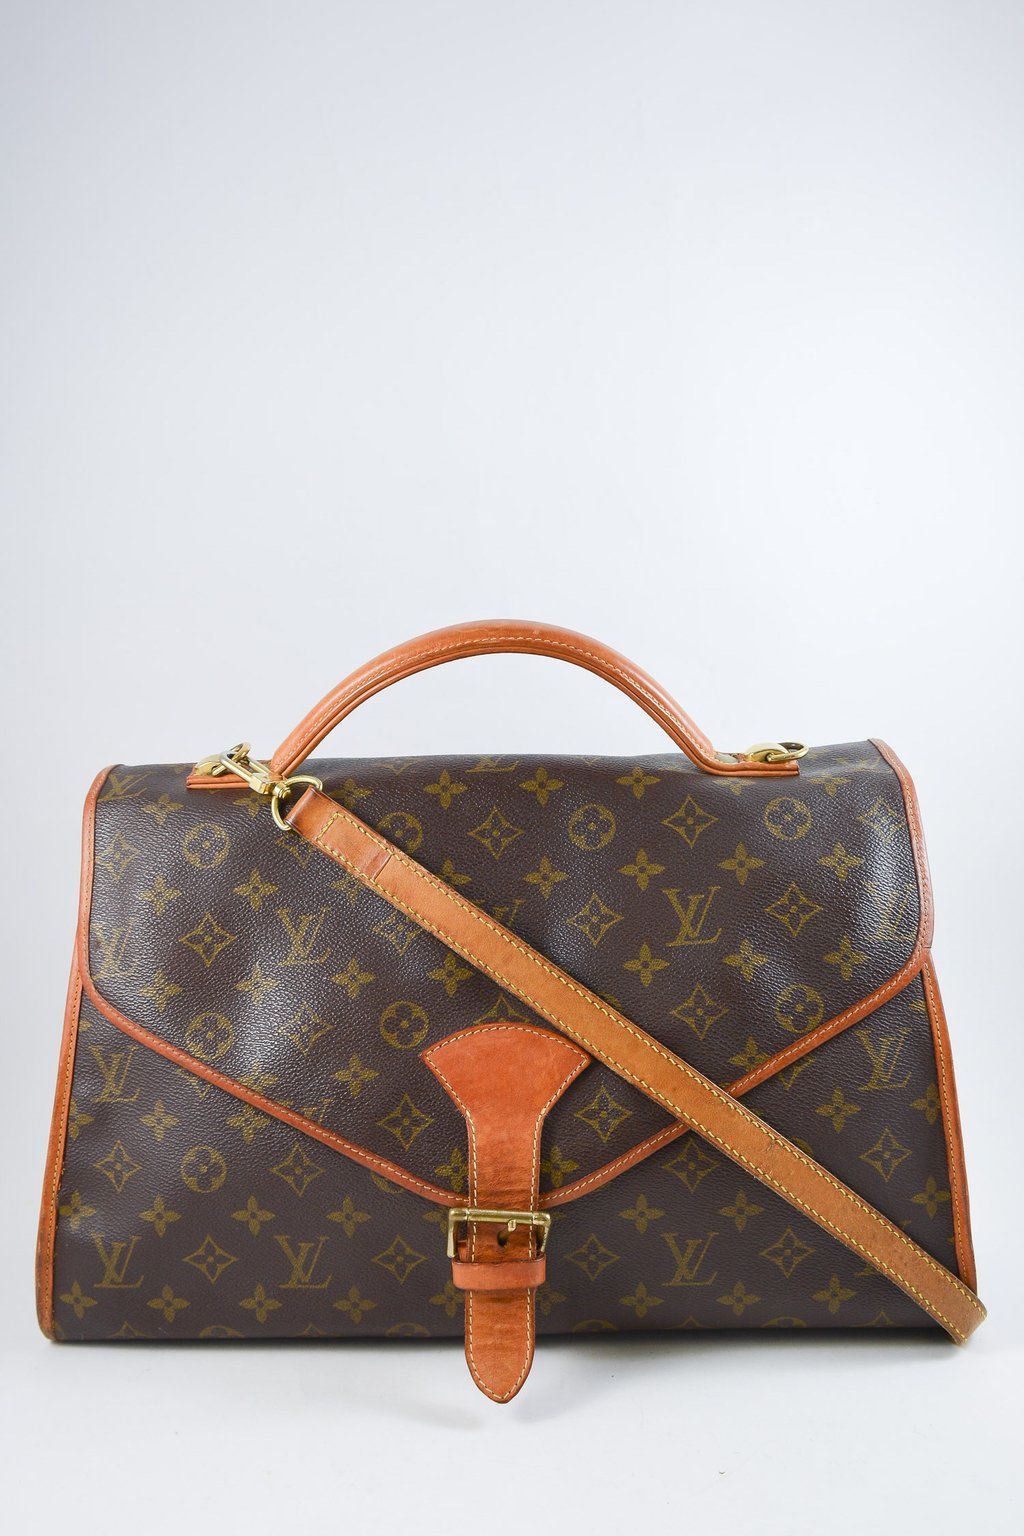 6255fa1f2fbe Louis Vuitton Vintage Monogram Canvas Beverly GM Briefcase Bag. Signature LV  monogram coated canvas with